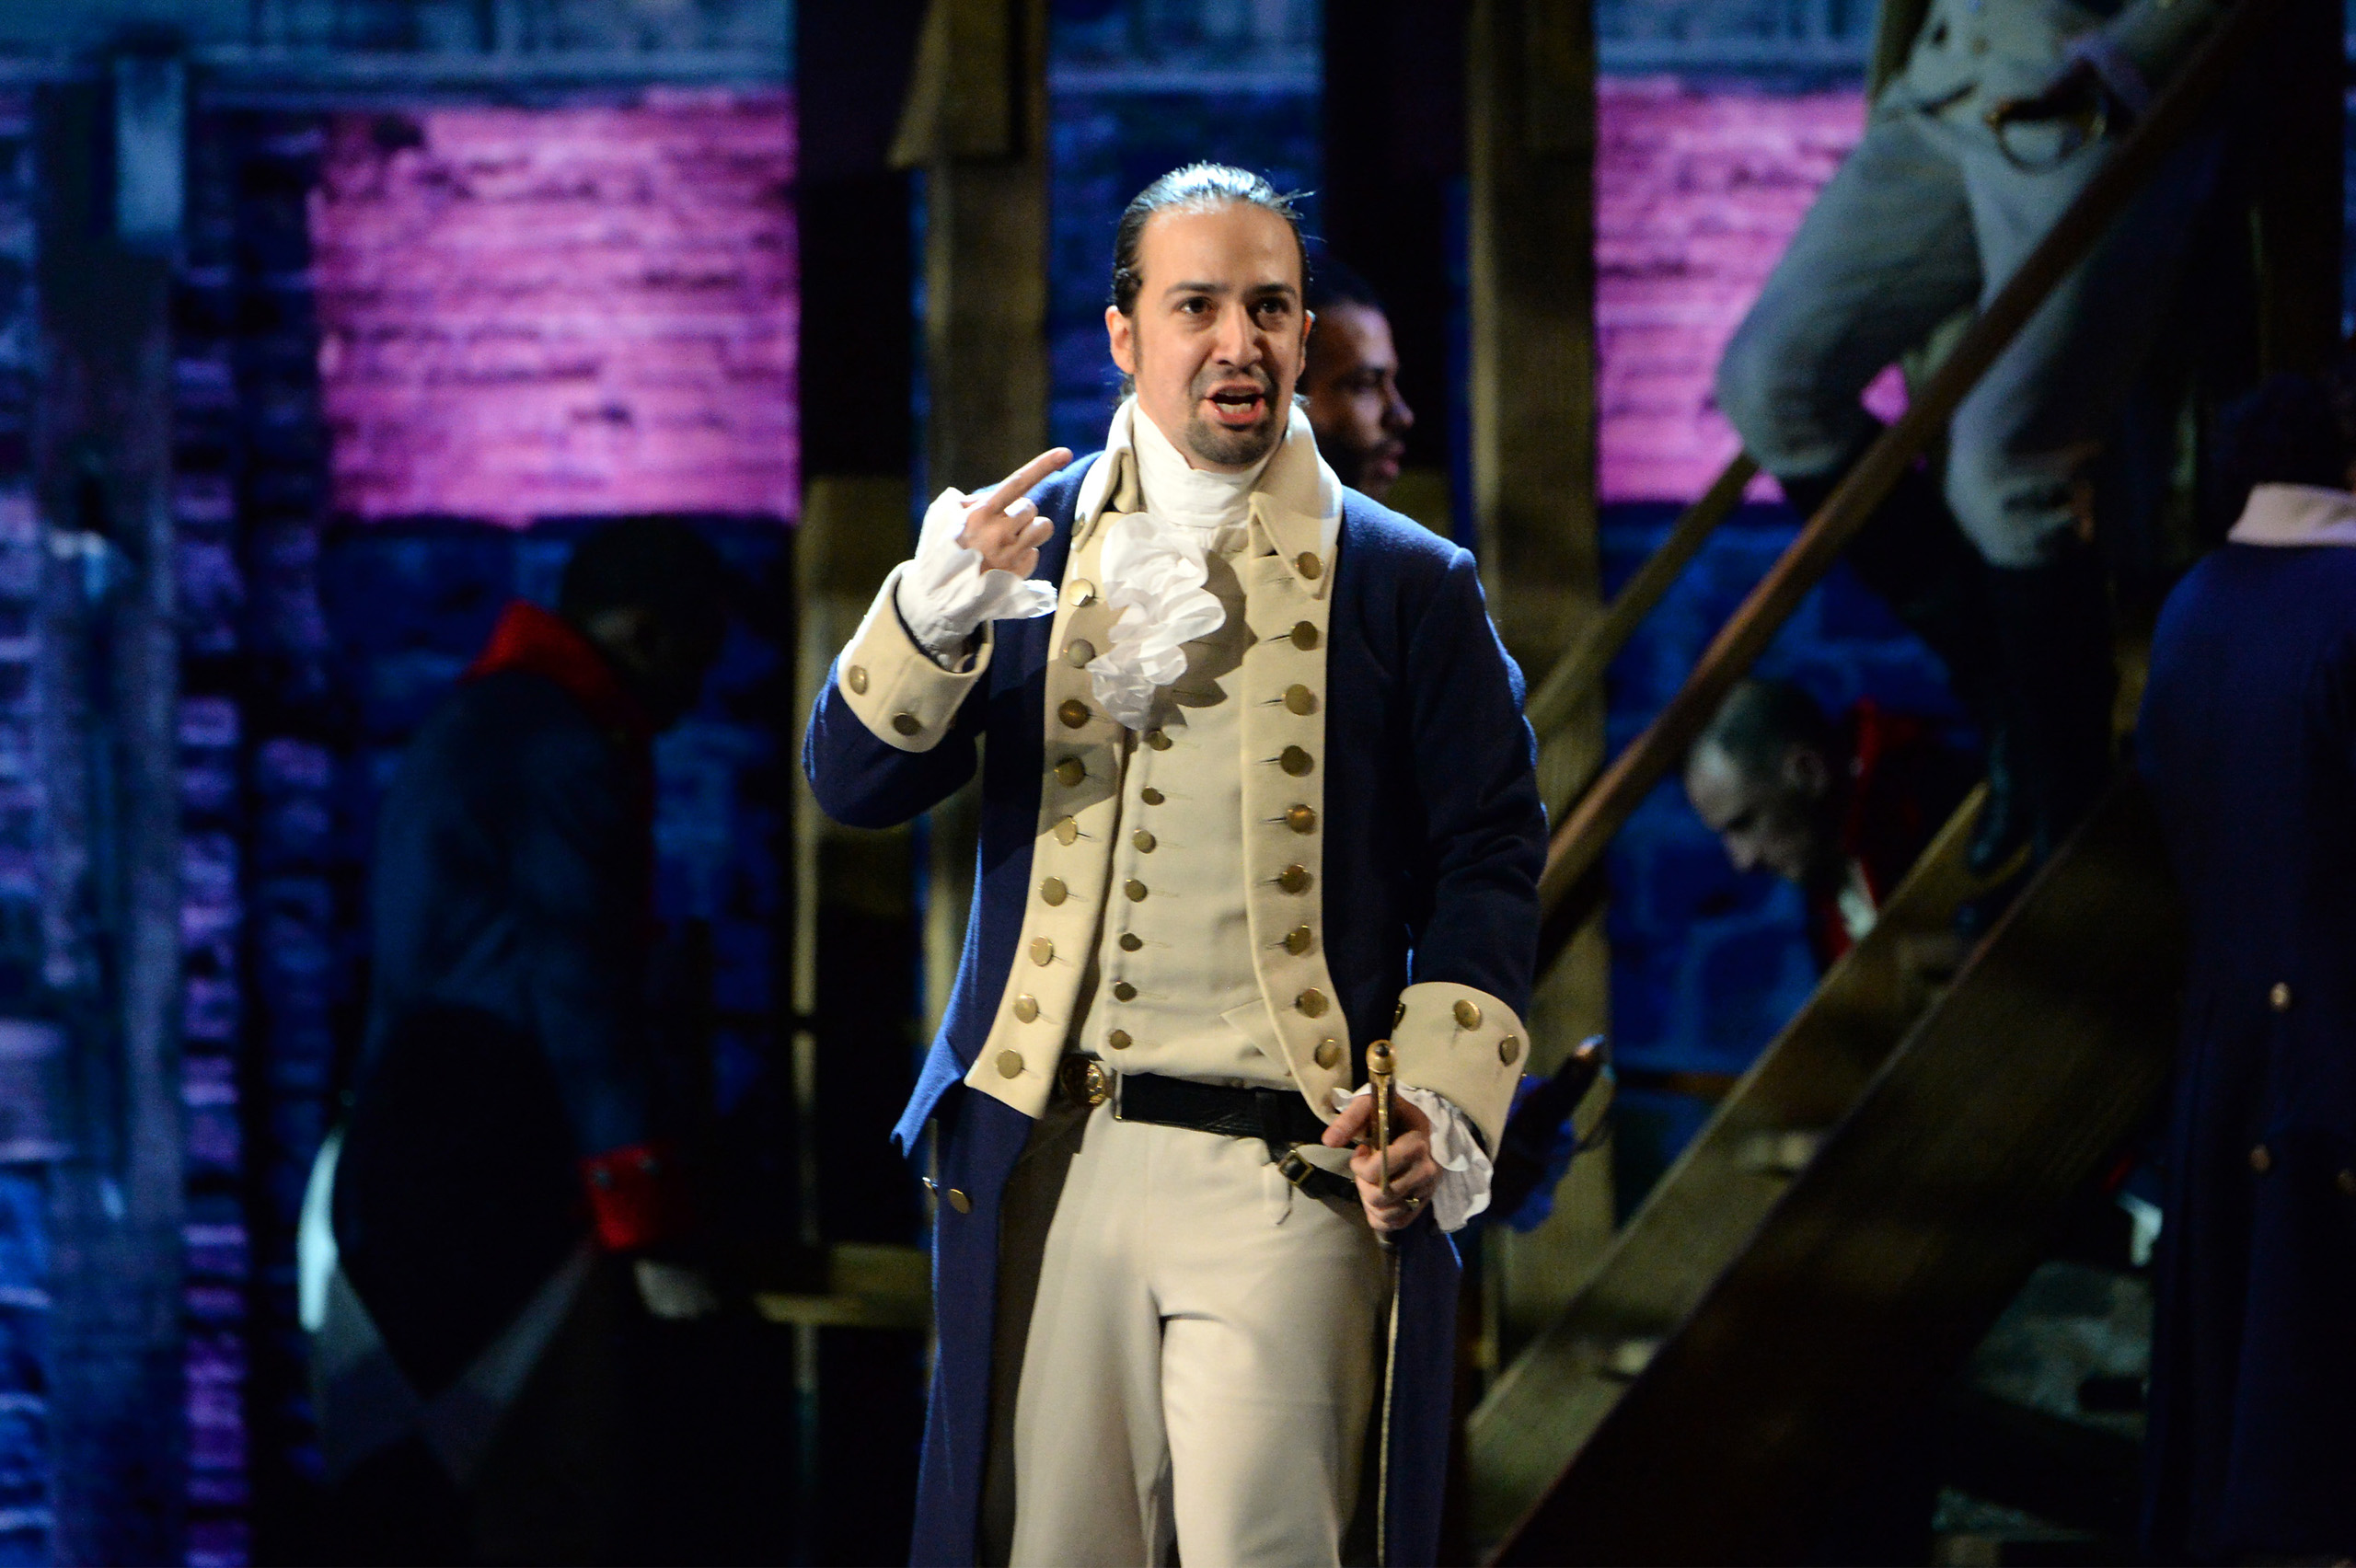 Lin-Manuel Miranda of 'Hamilton' performs onstage during the 70th Annual Tony Awards at The Beacon Theatre in New York City on June 12, 2016.